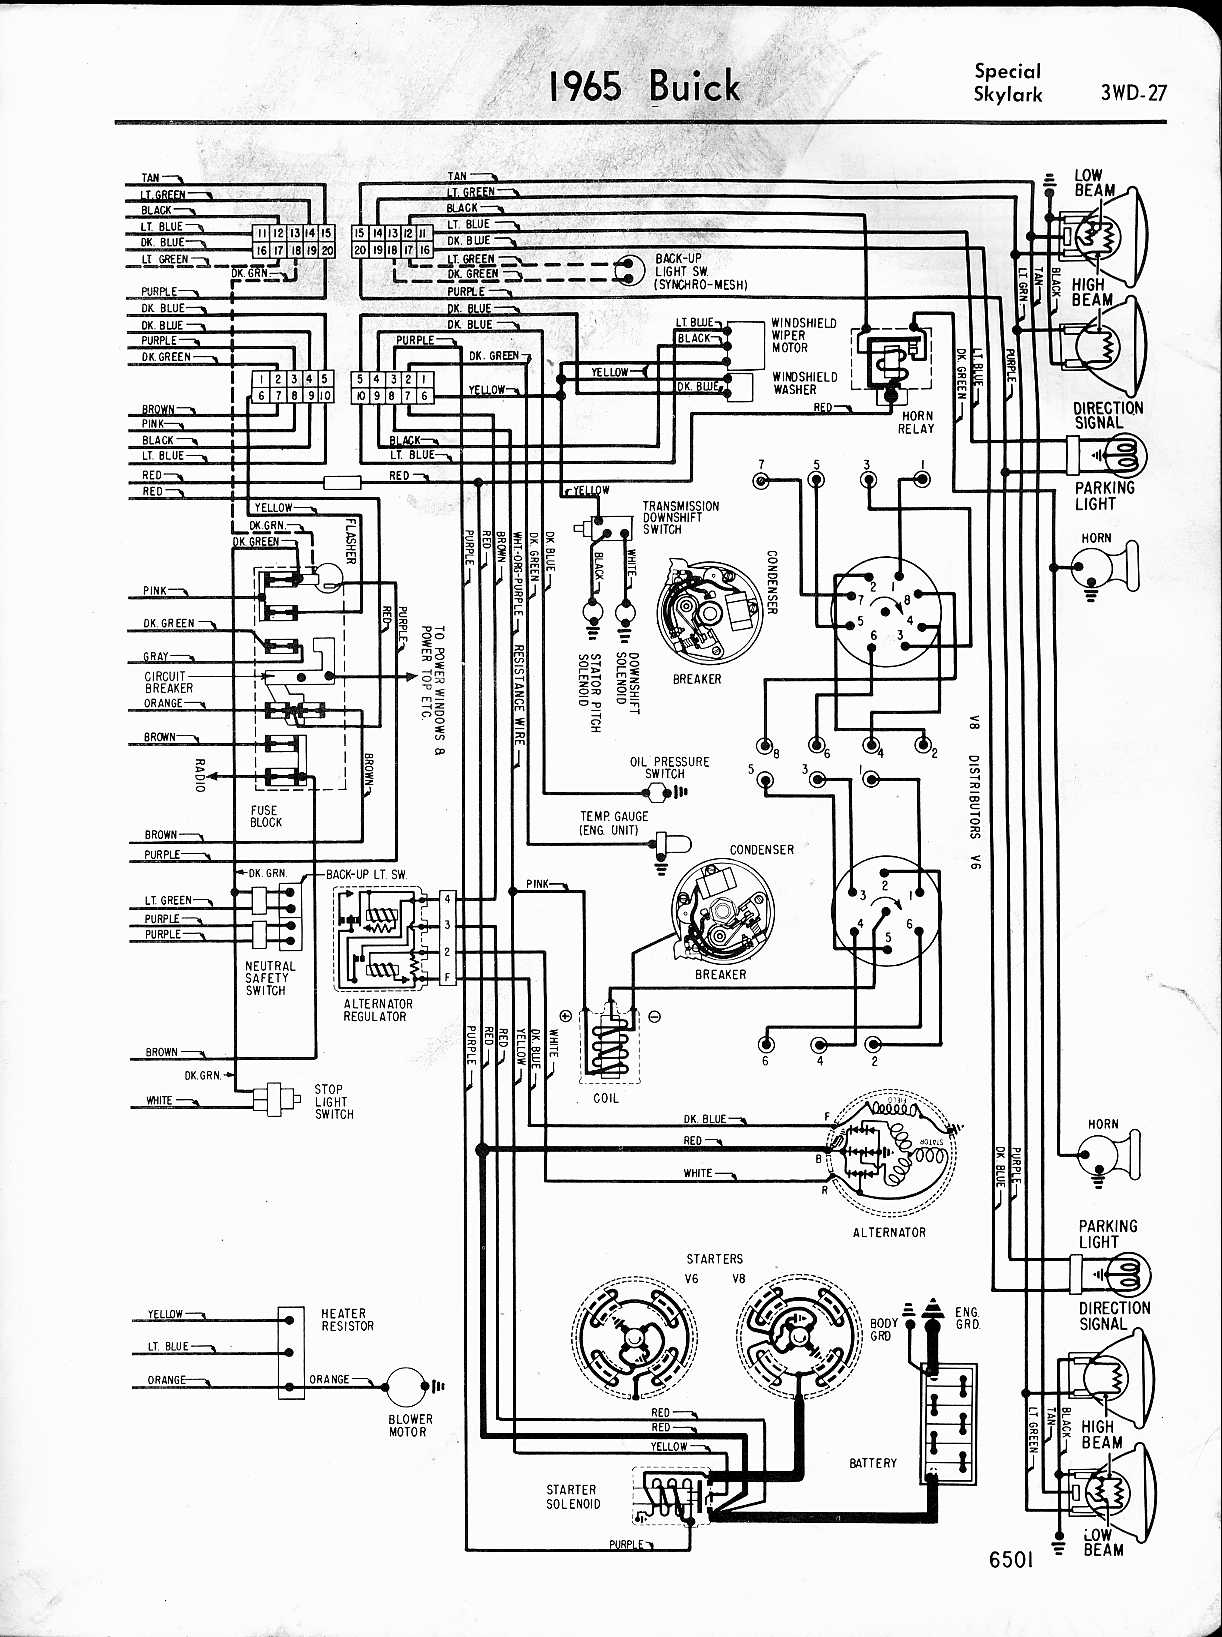 69 buick ignition wiring wiring schematics diagram rh mychampagnedaze com  1996 Buick Regal Ignition Switch Diagram 2003 Buick Regal Wiring-Diagram